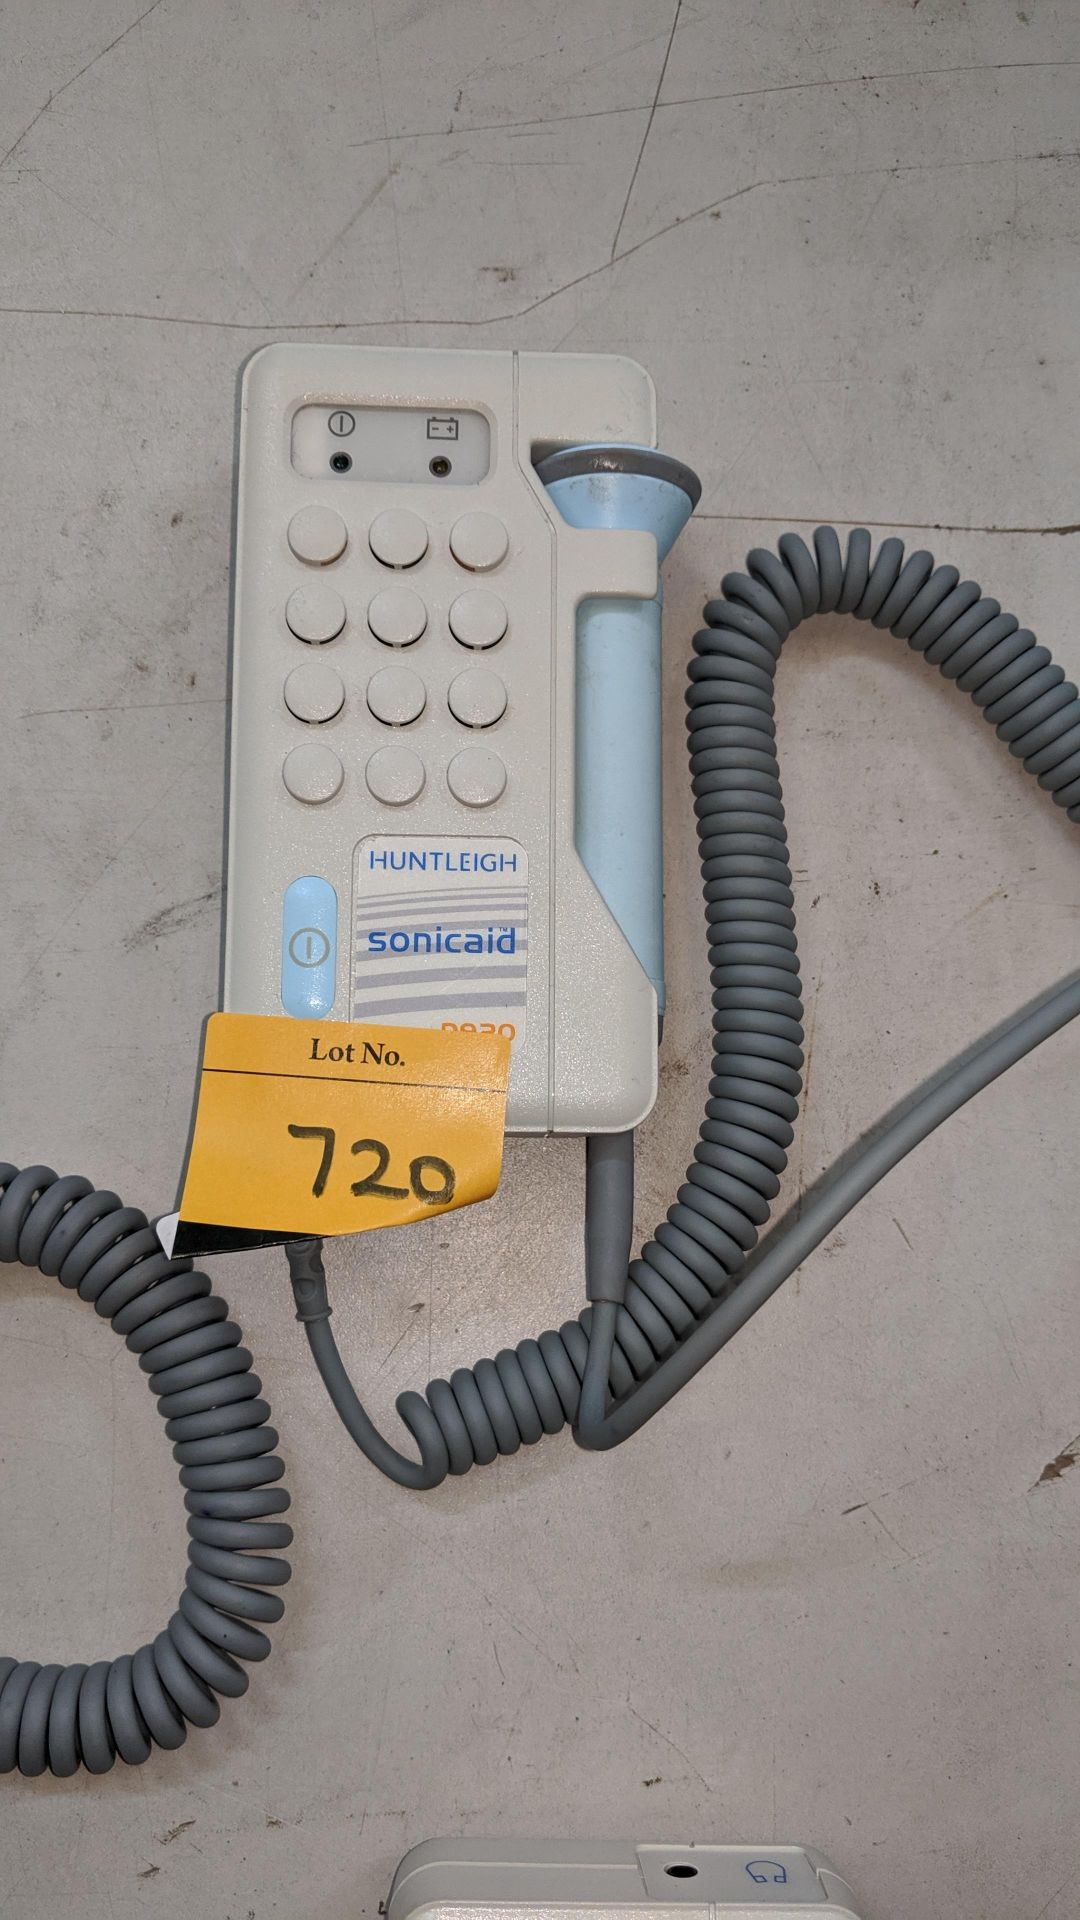 Lot 720 - Huntleigh Sonicaid D930 Fetal Doppler tester. This is one of a large number of lots used/owned by